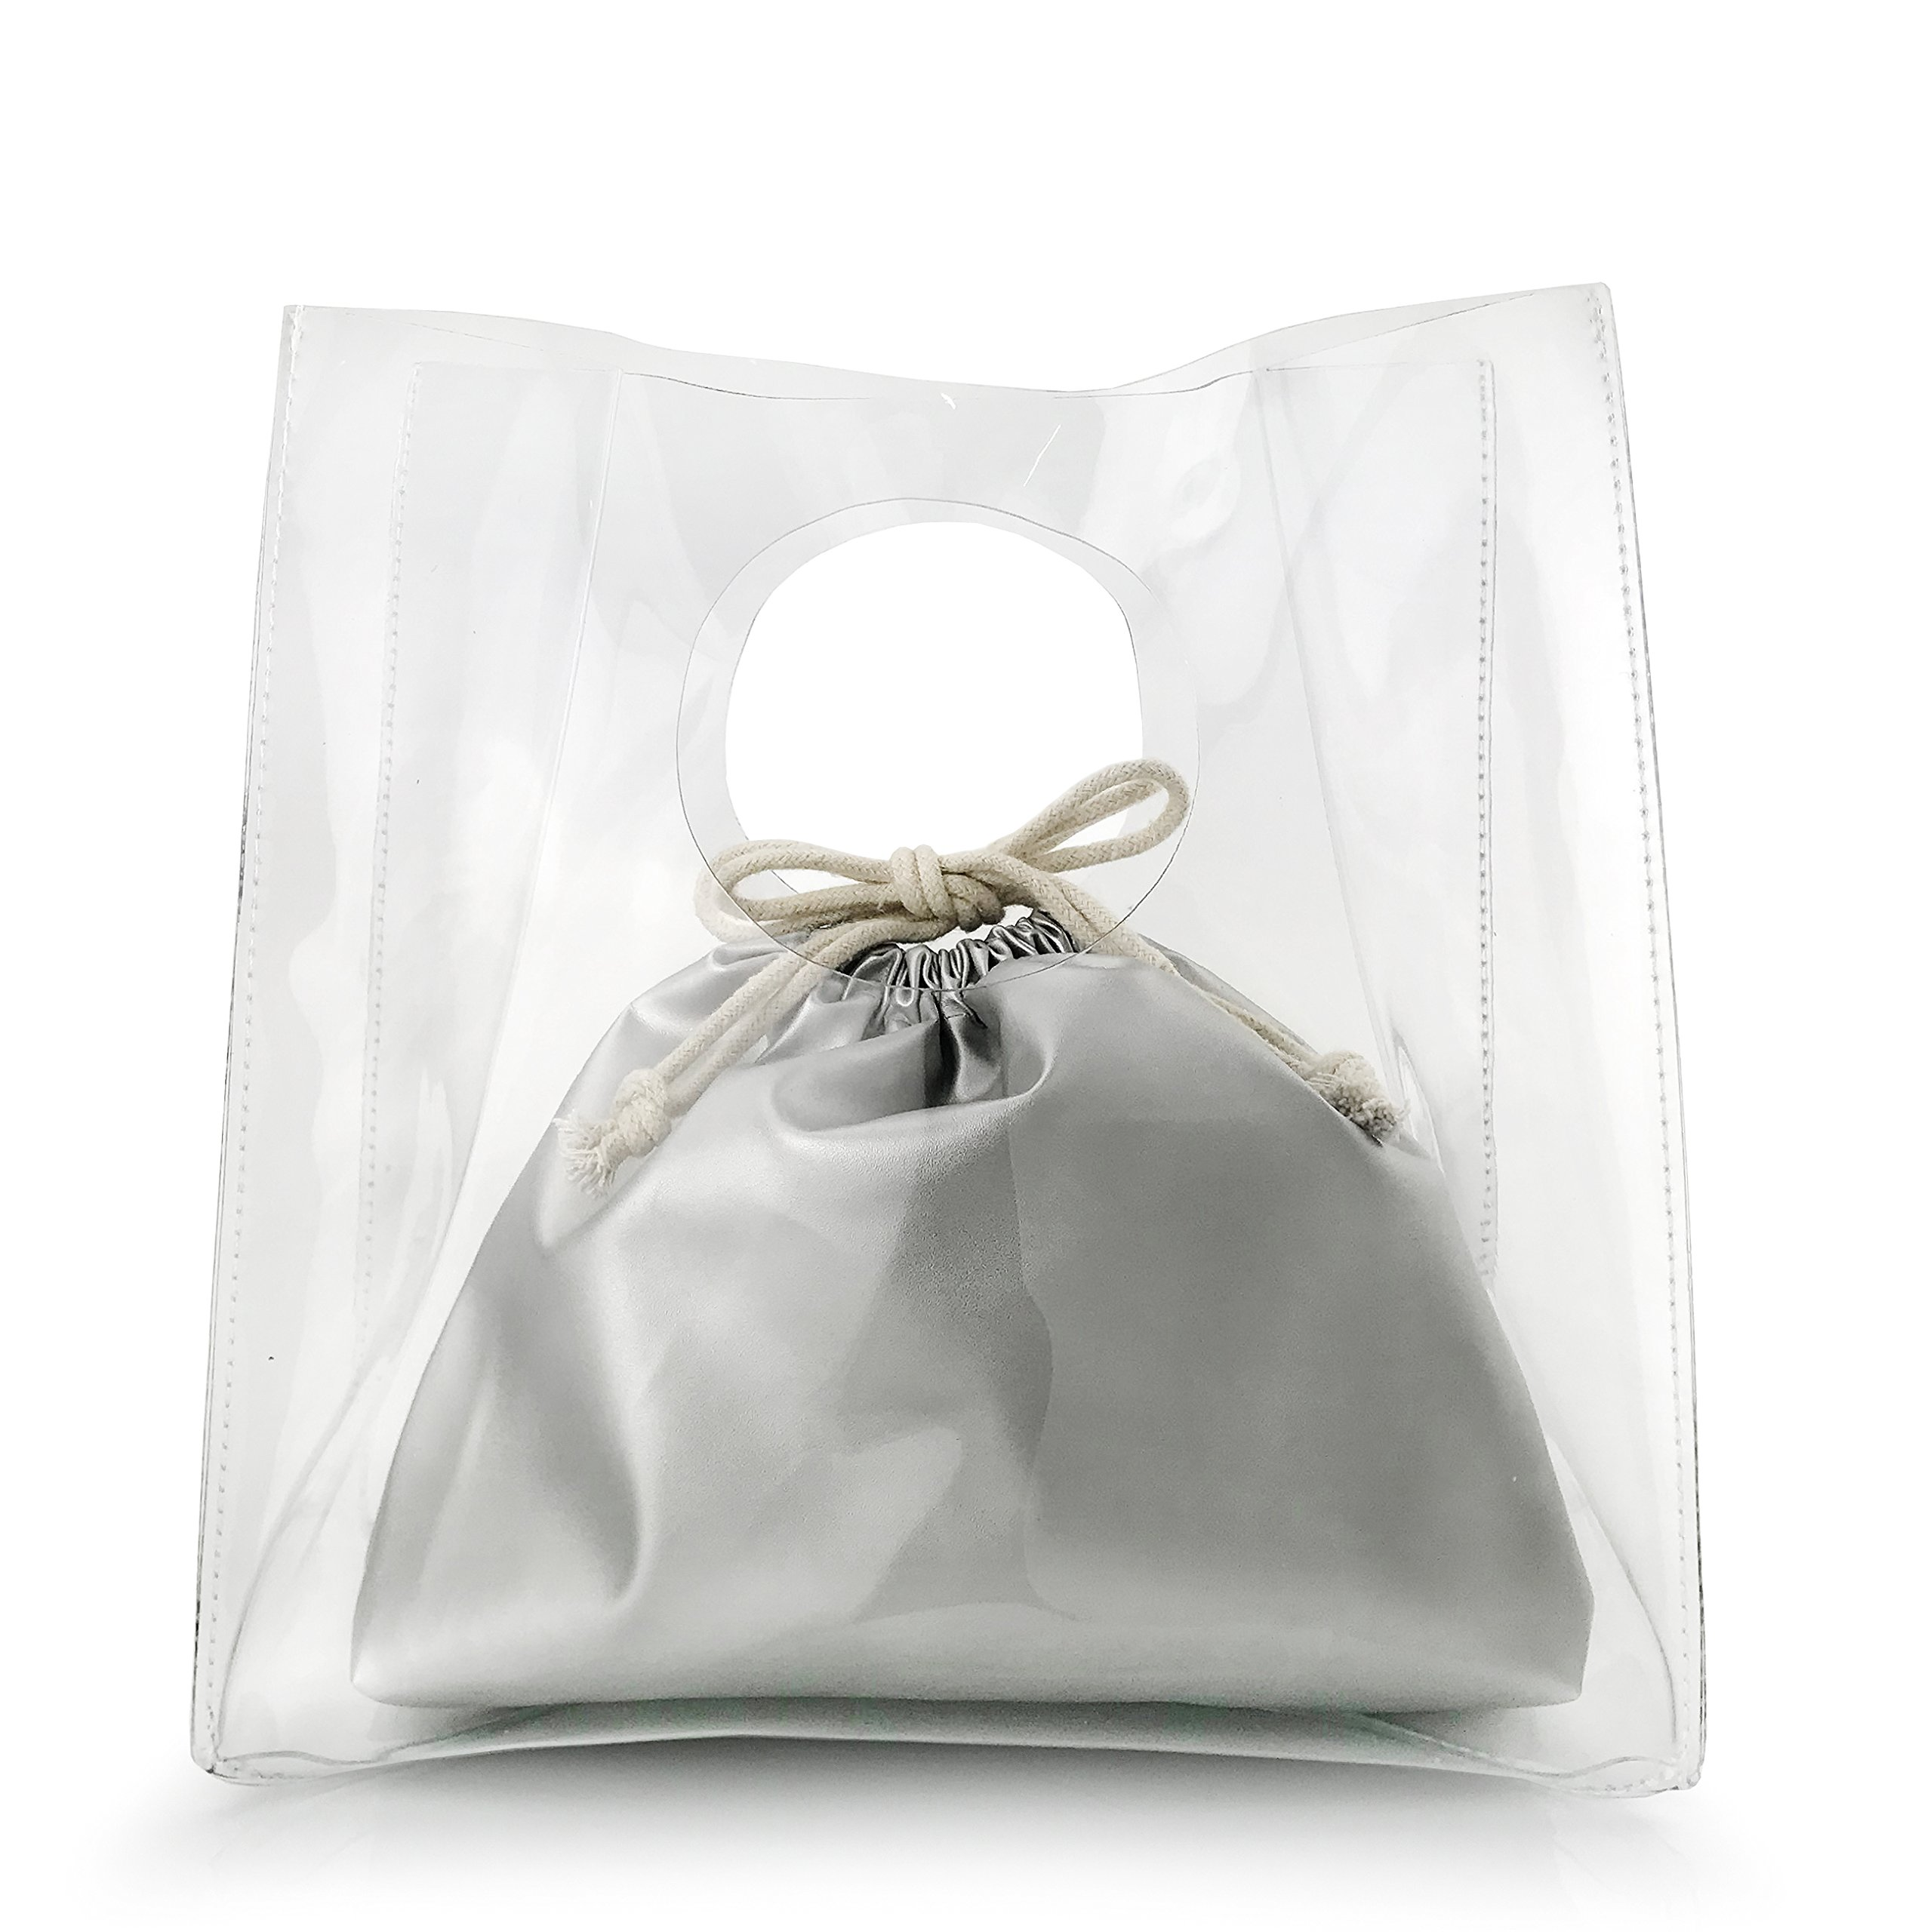 Minimalist Clear Handbag Women's Clutch with Pu Leather Drawstring Pouch (Silver)